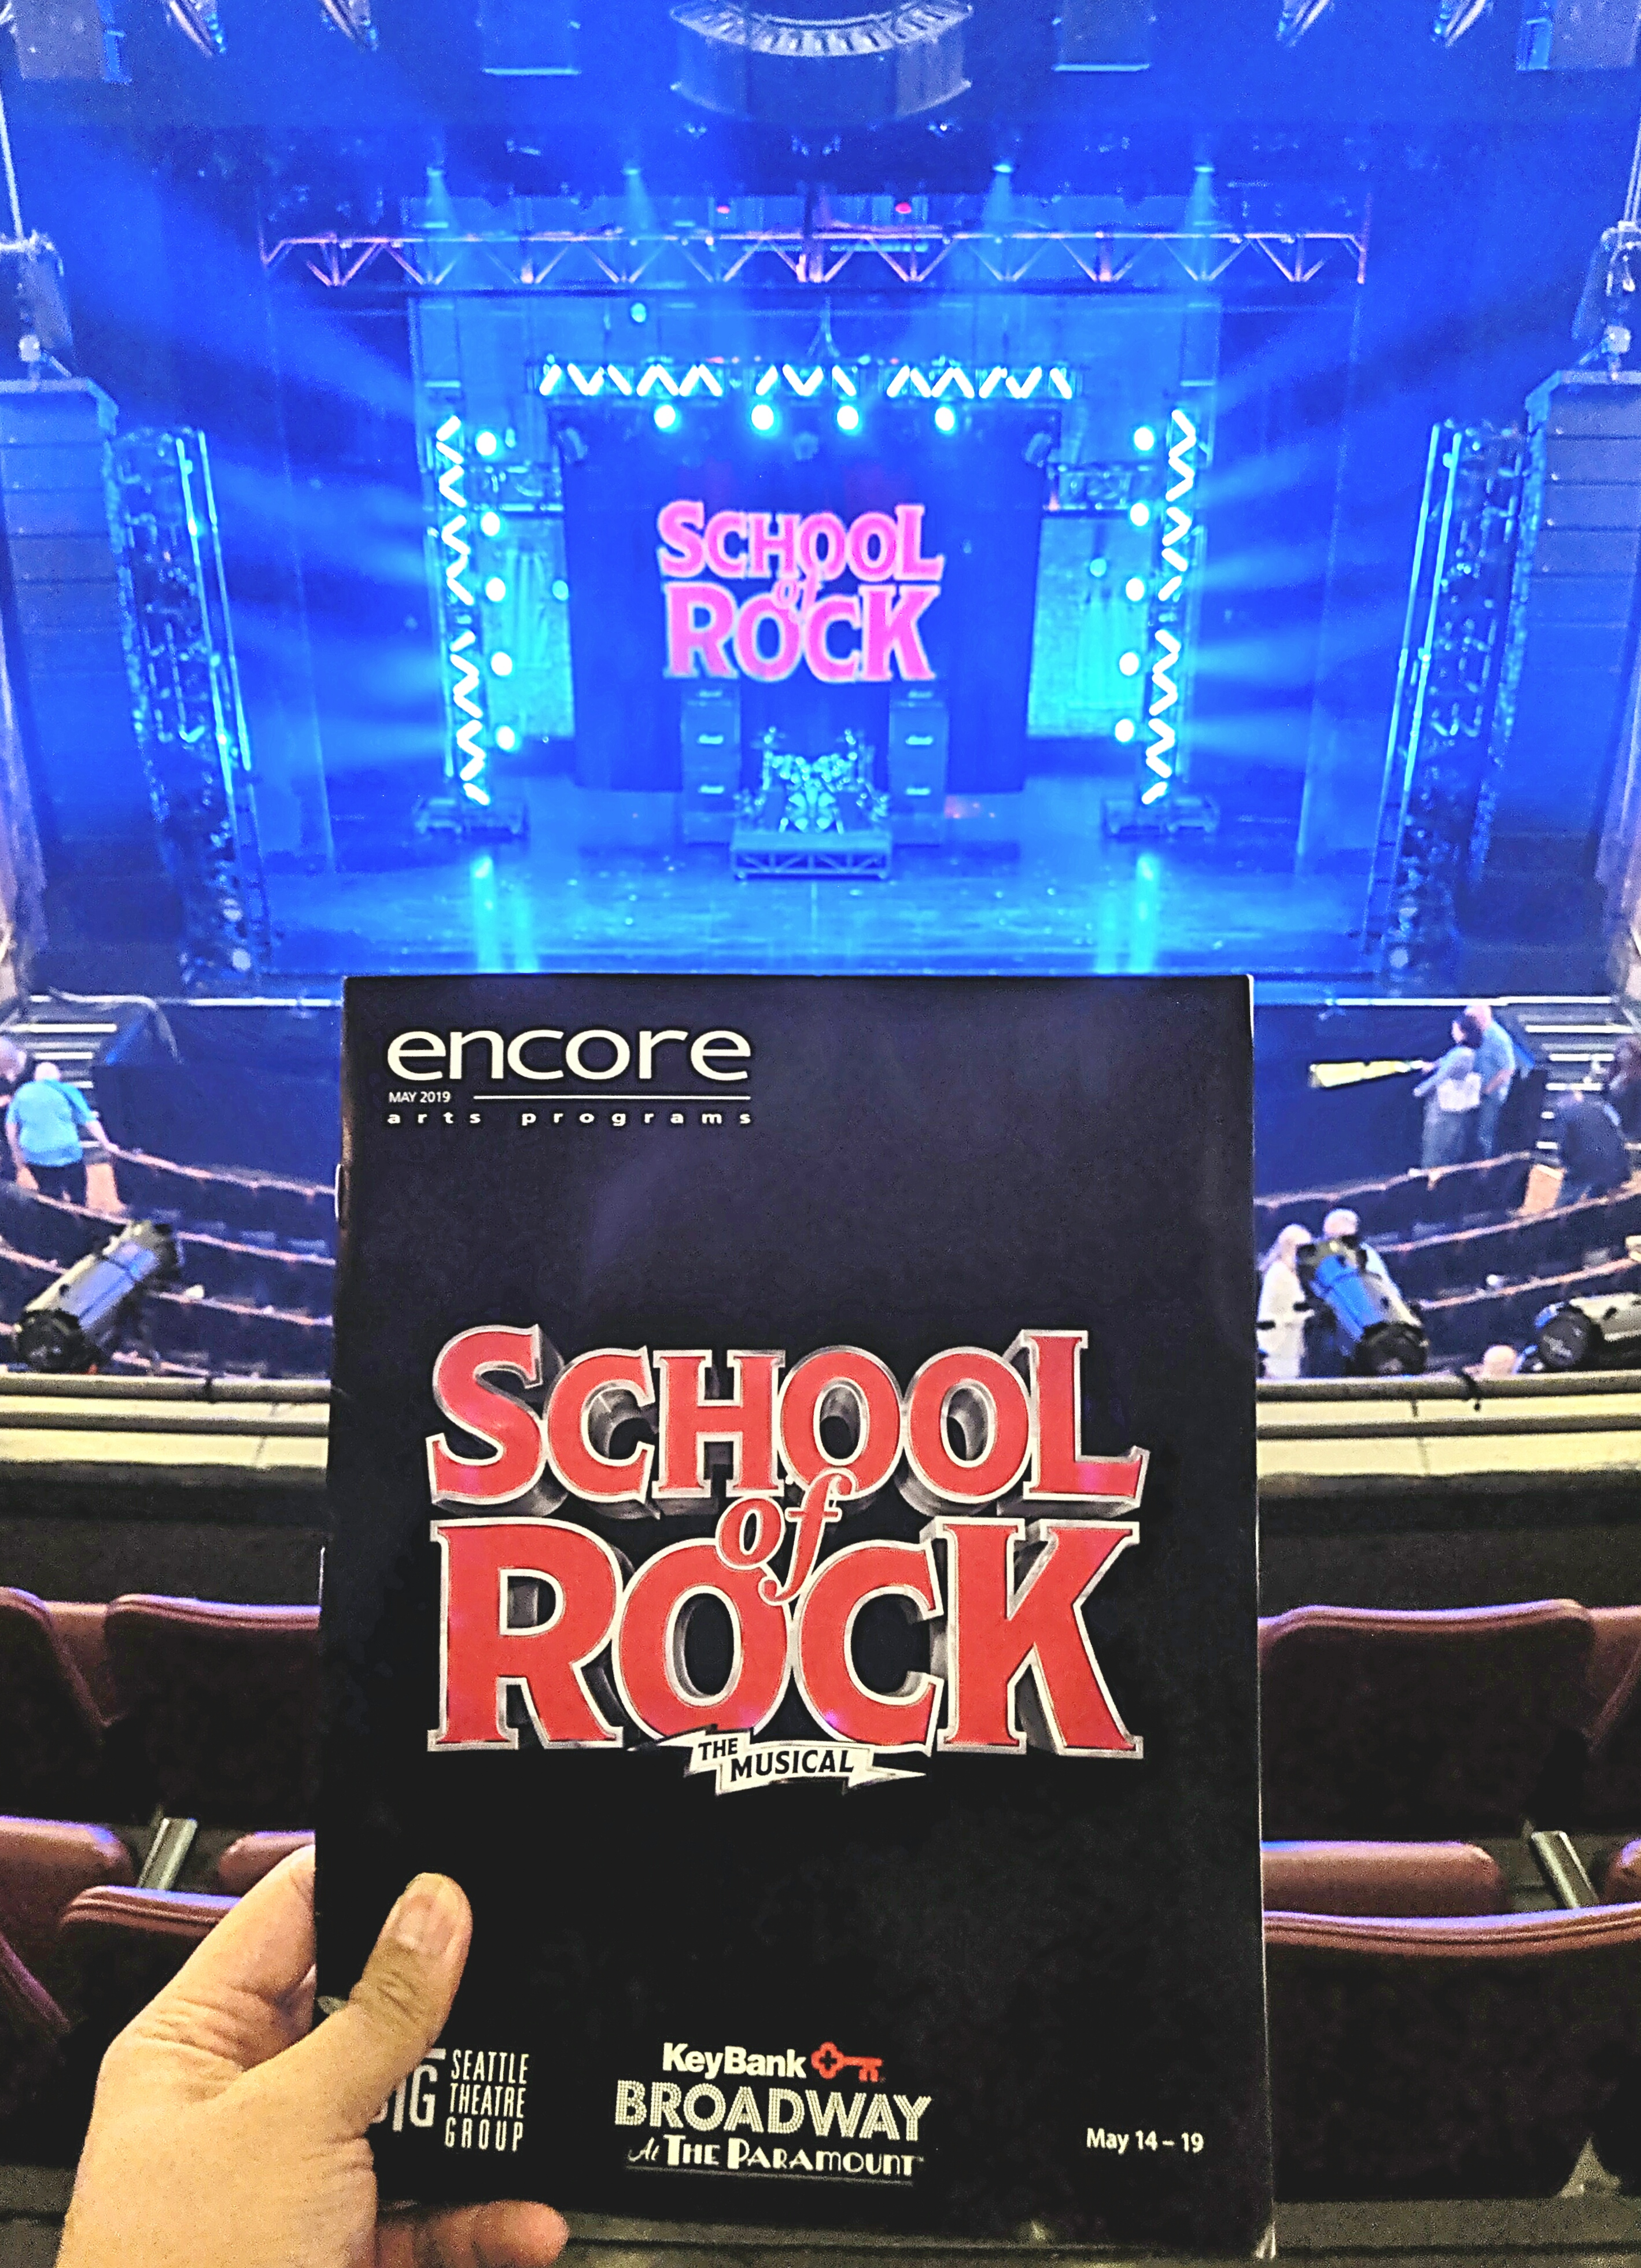 School of Rock the Musical w/ Seattle Theatre Group. #Talented kid performers but my least favorite Andrew Lloyd Webber #musical. Not a fan of shows w/ lots of #kids esp when the message is they know better than sensible adults.